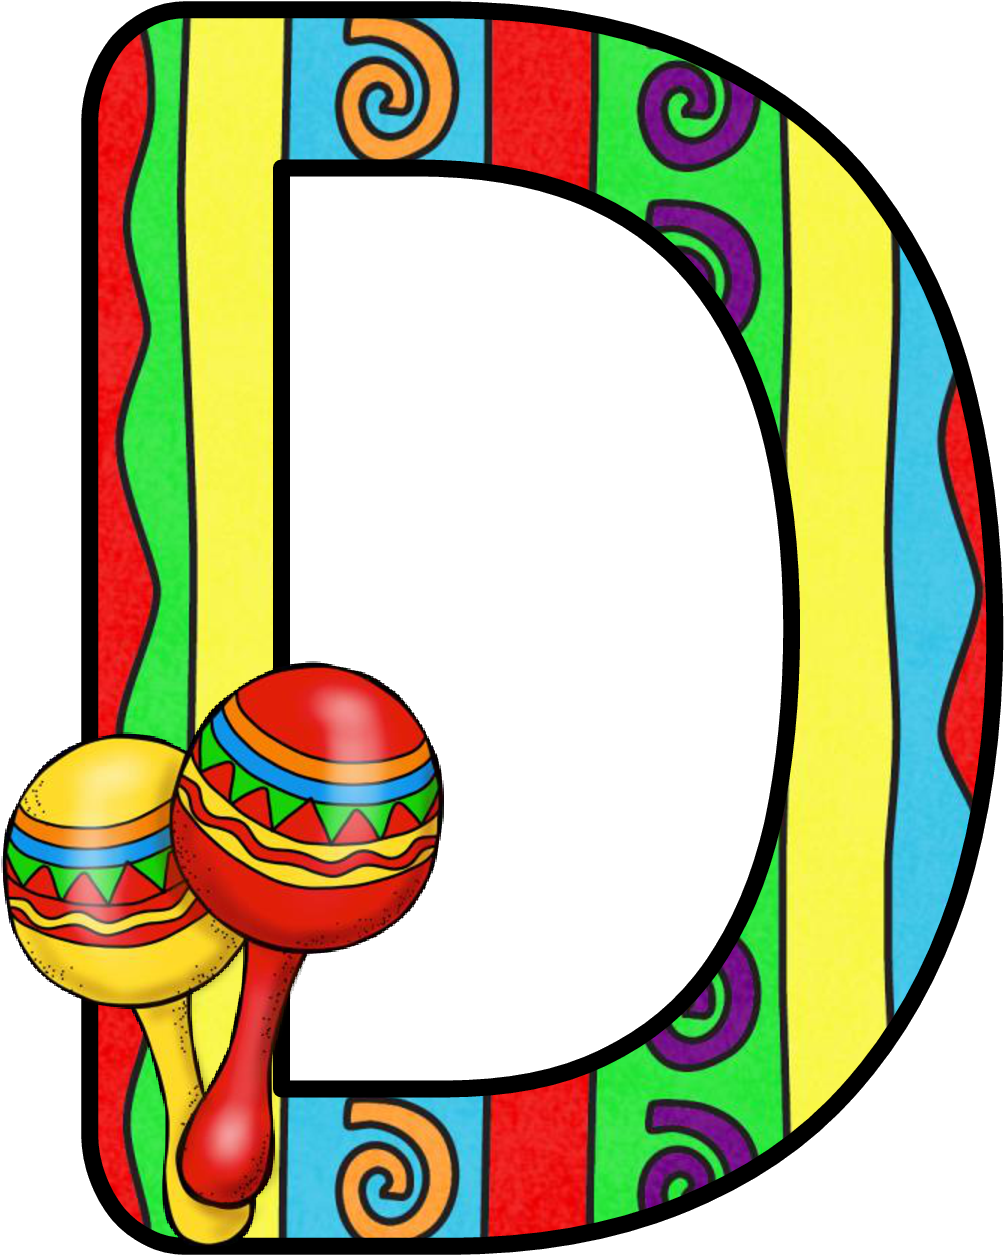 Letter p black and white fiesta clipart picture freeuse download HD Fiesta Clipart Lettering - Fiesta Letters , Free Unlimited ... picture freeuse download